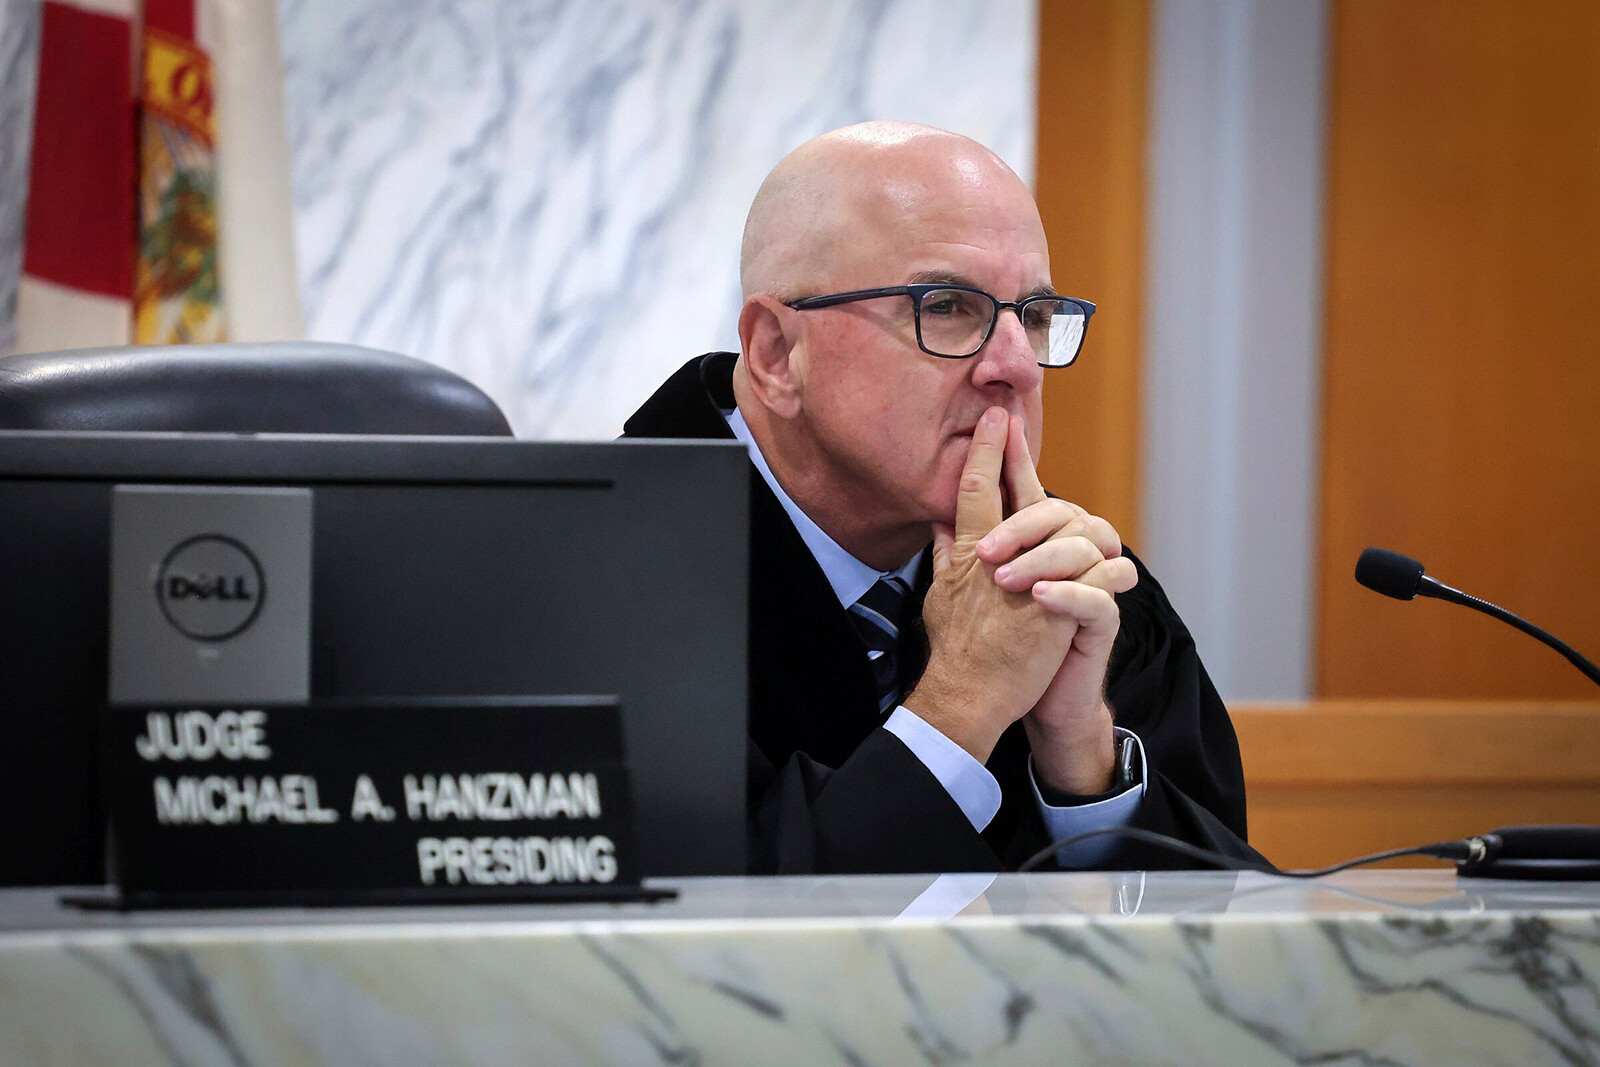 <i>Carl Juste/AP</i><br/>Miami-Dade Circuit Judge Michael Hanzman listens as tenants share their thoughts regarding the future of the site of the Champlain Towers South building that collapsed in Surfside.